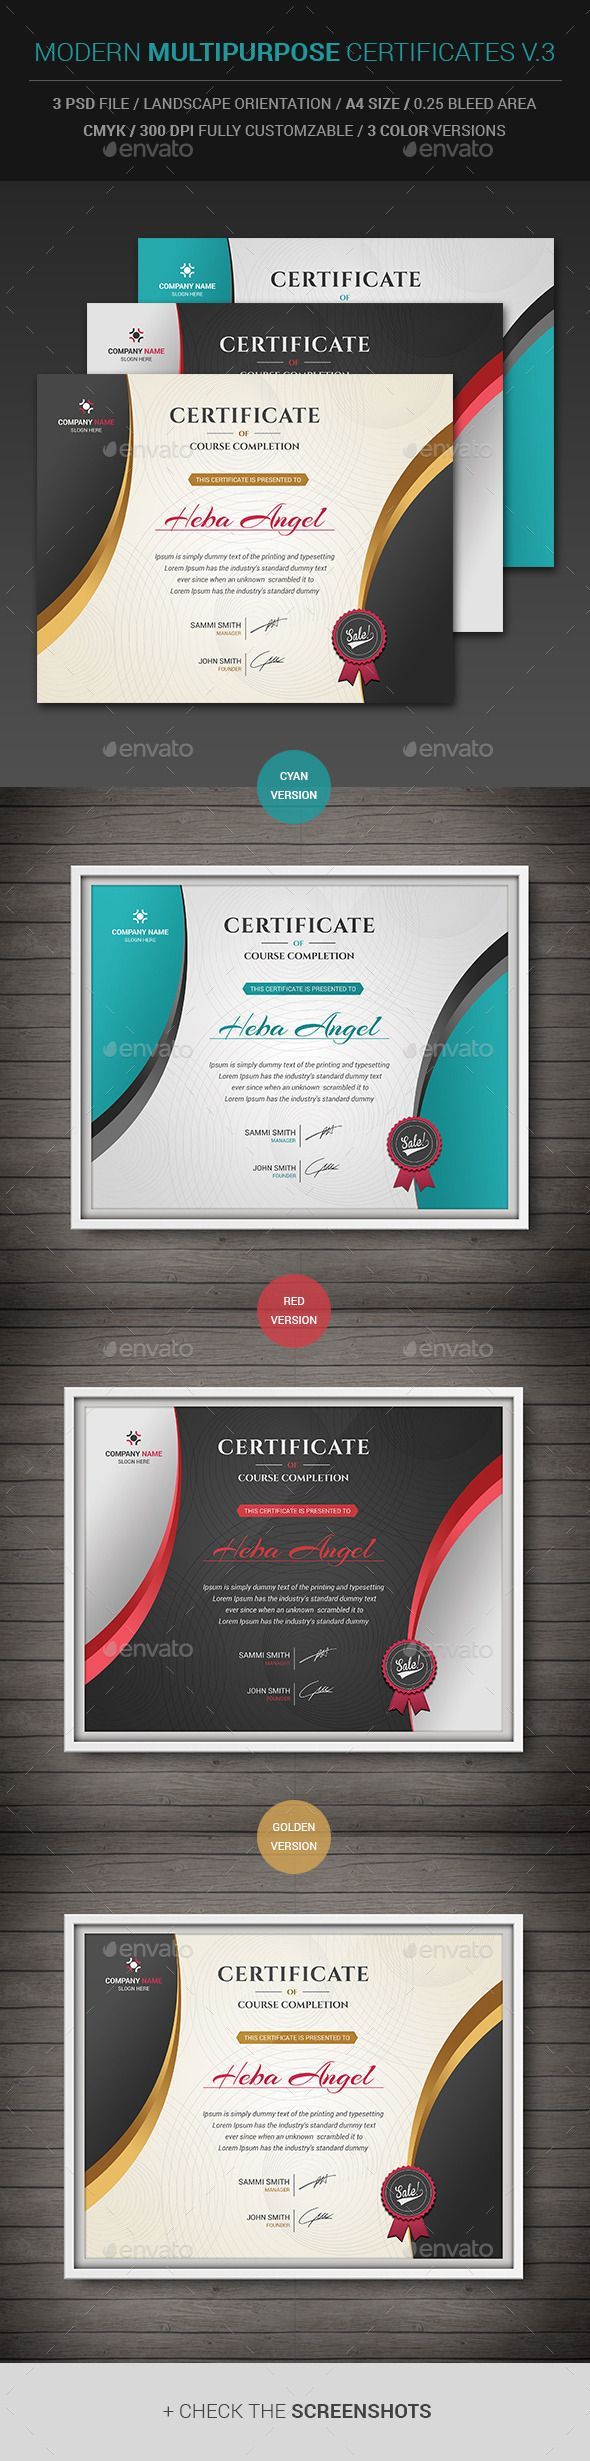 25 unique certificate templates ideas on pinterest free certificate yadclub Images